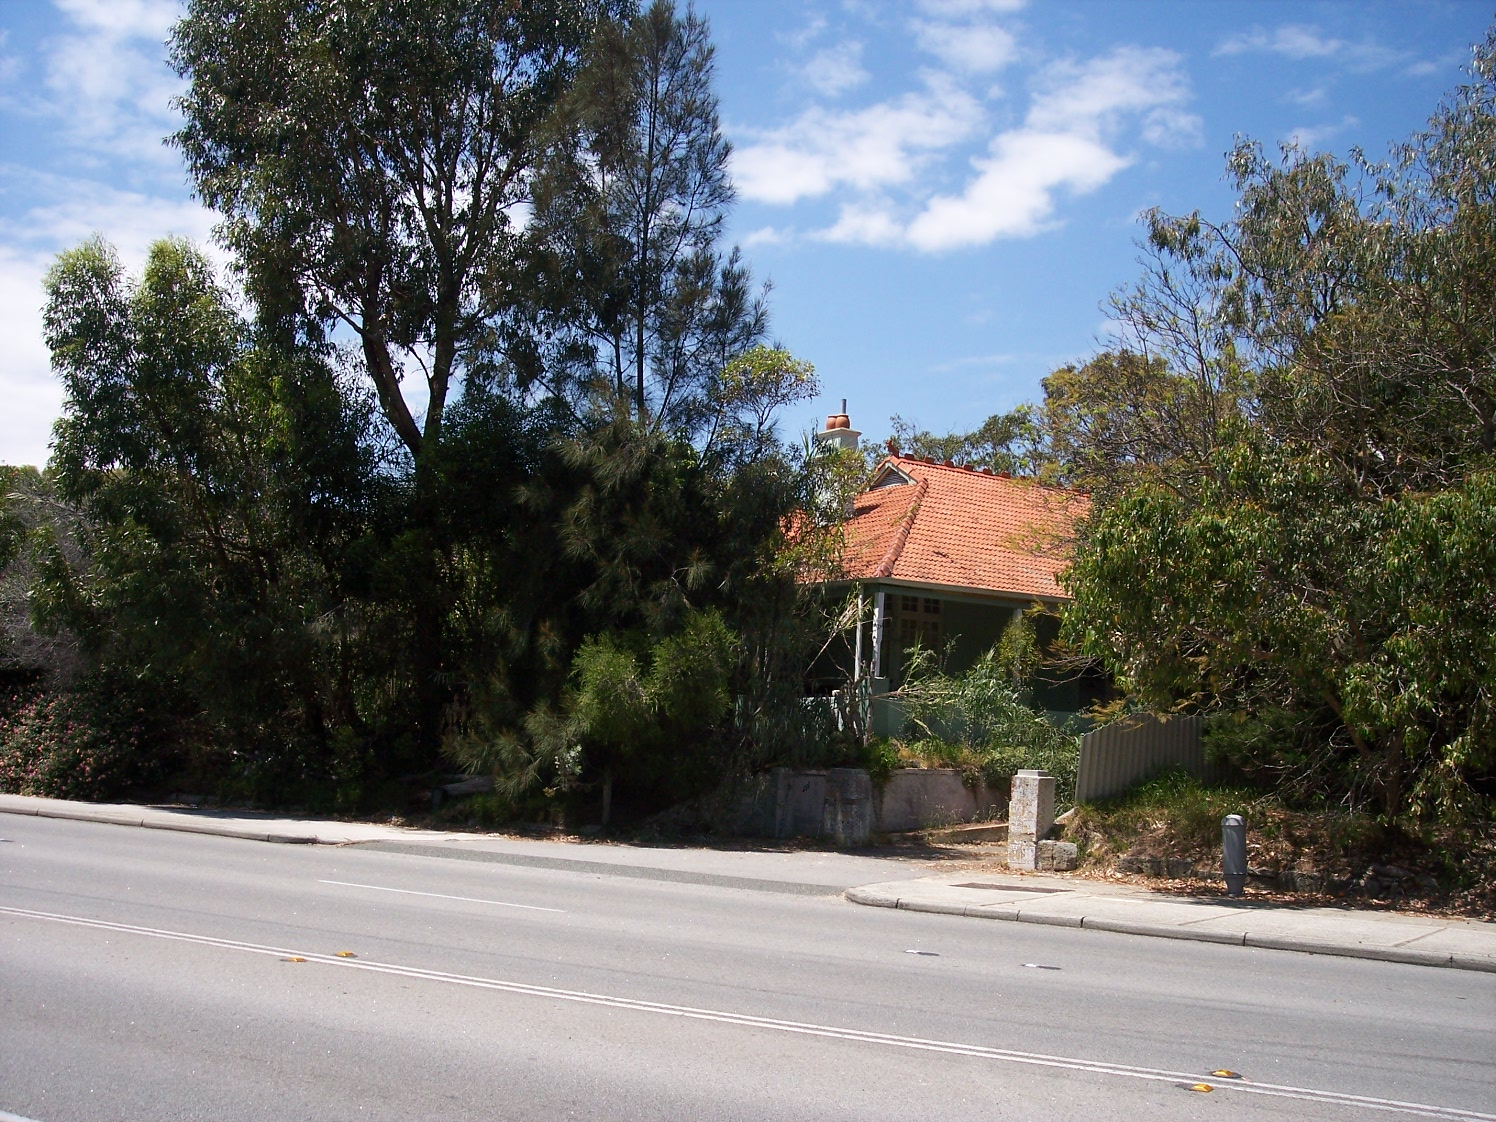 31-10-06 View SE 211 Canning Highway.jpg